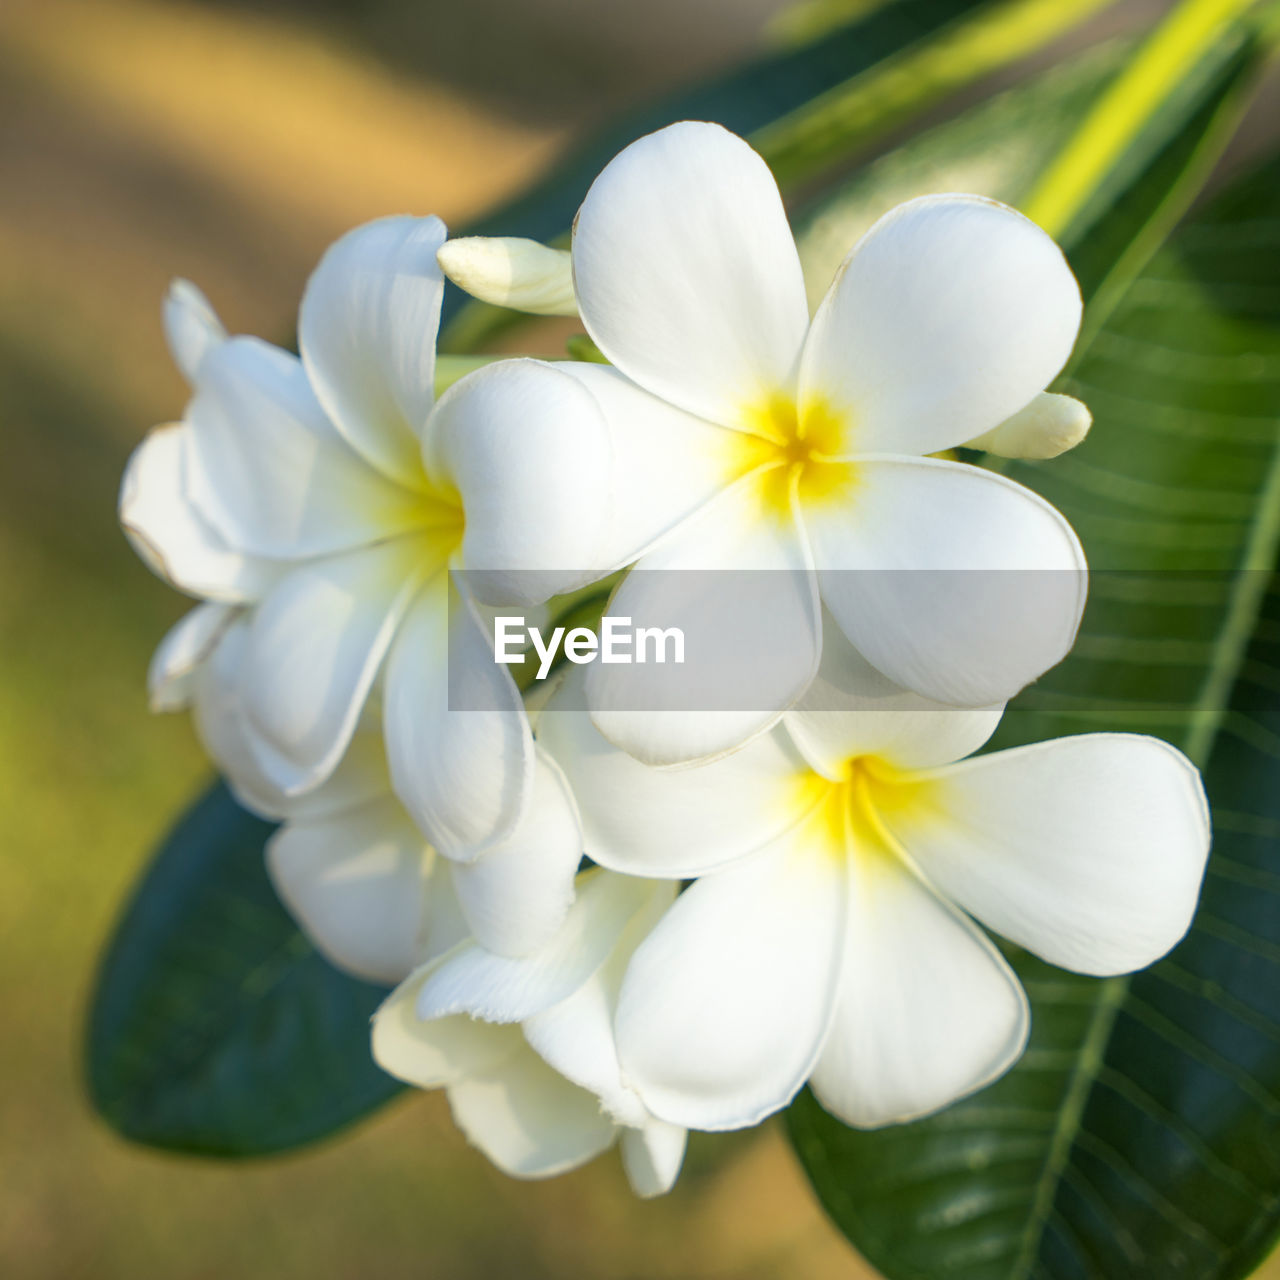 flower, flowering plant, beauty in nature, fragility, vulnerability, plant, inflorescence, white color, freshness, flower head, close-up, petal, growth, no people, nature, focus on foreground, day, botany, selective focus, outdoors